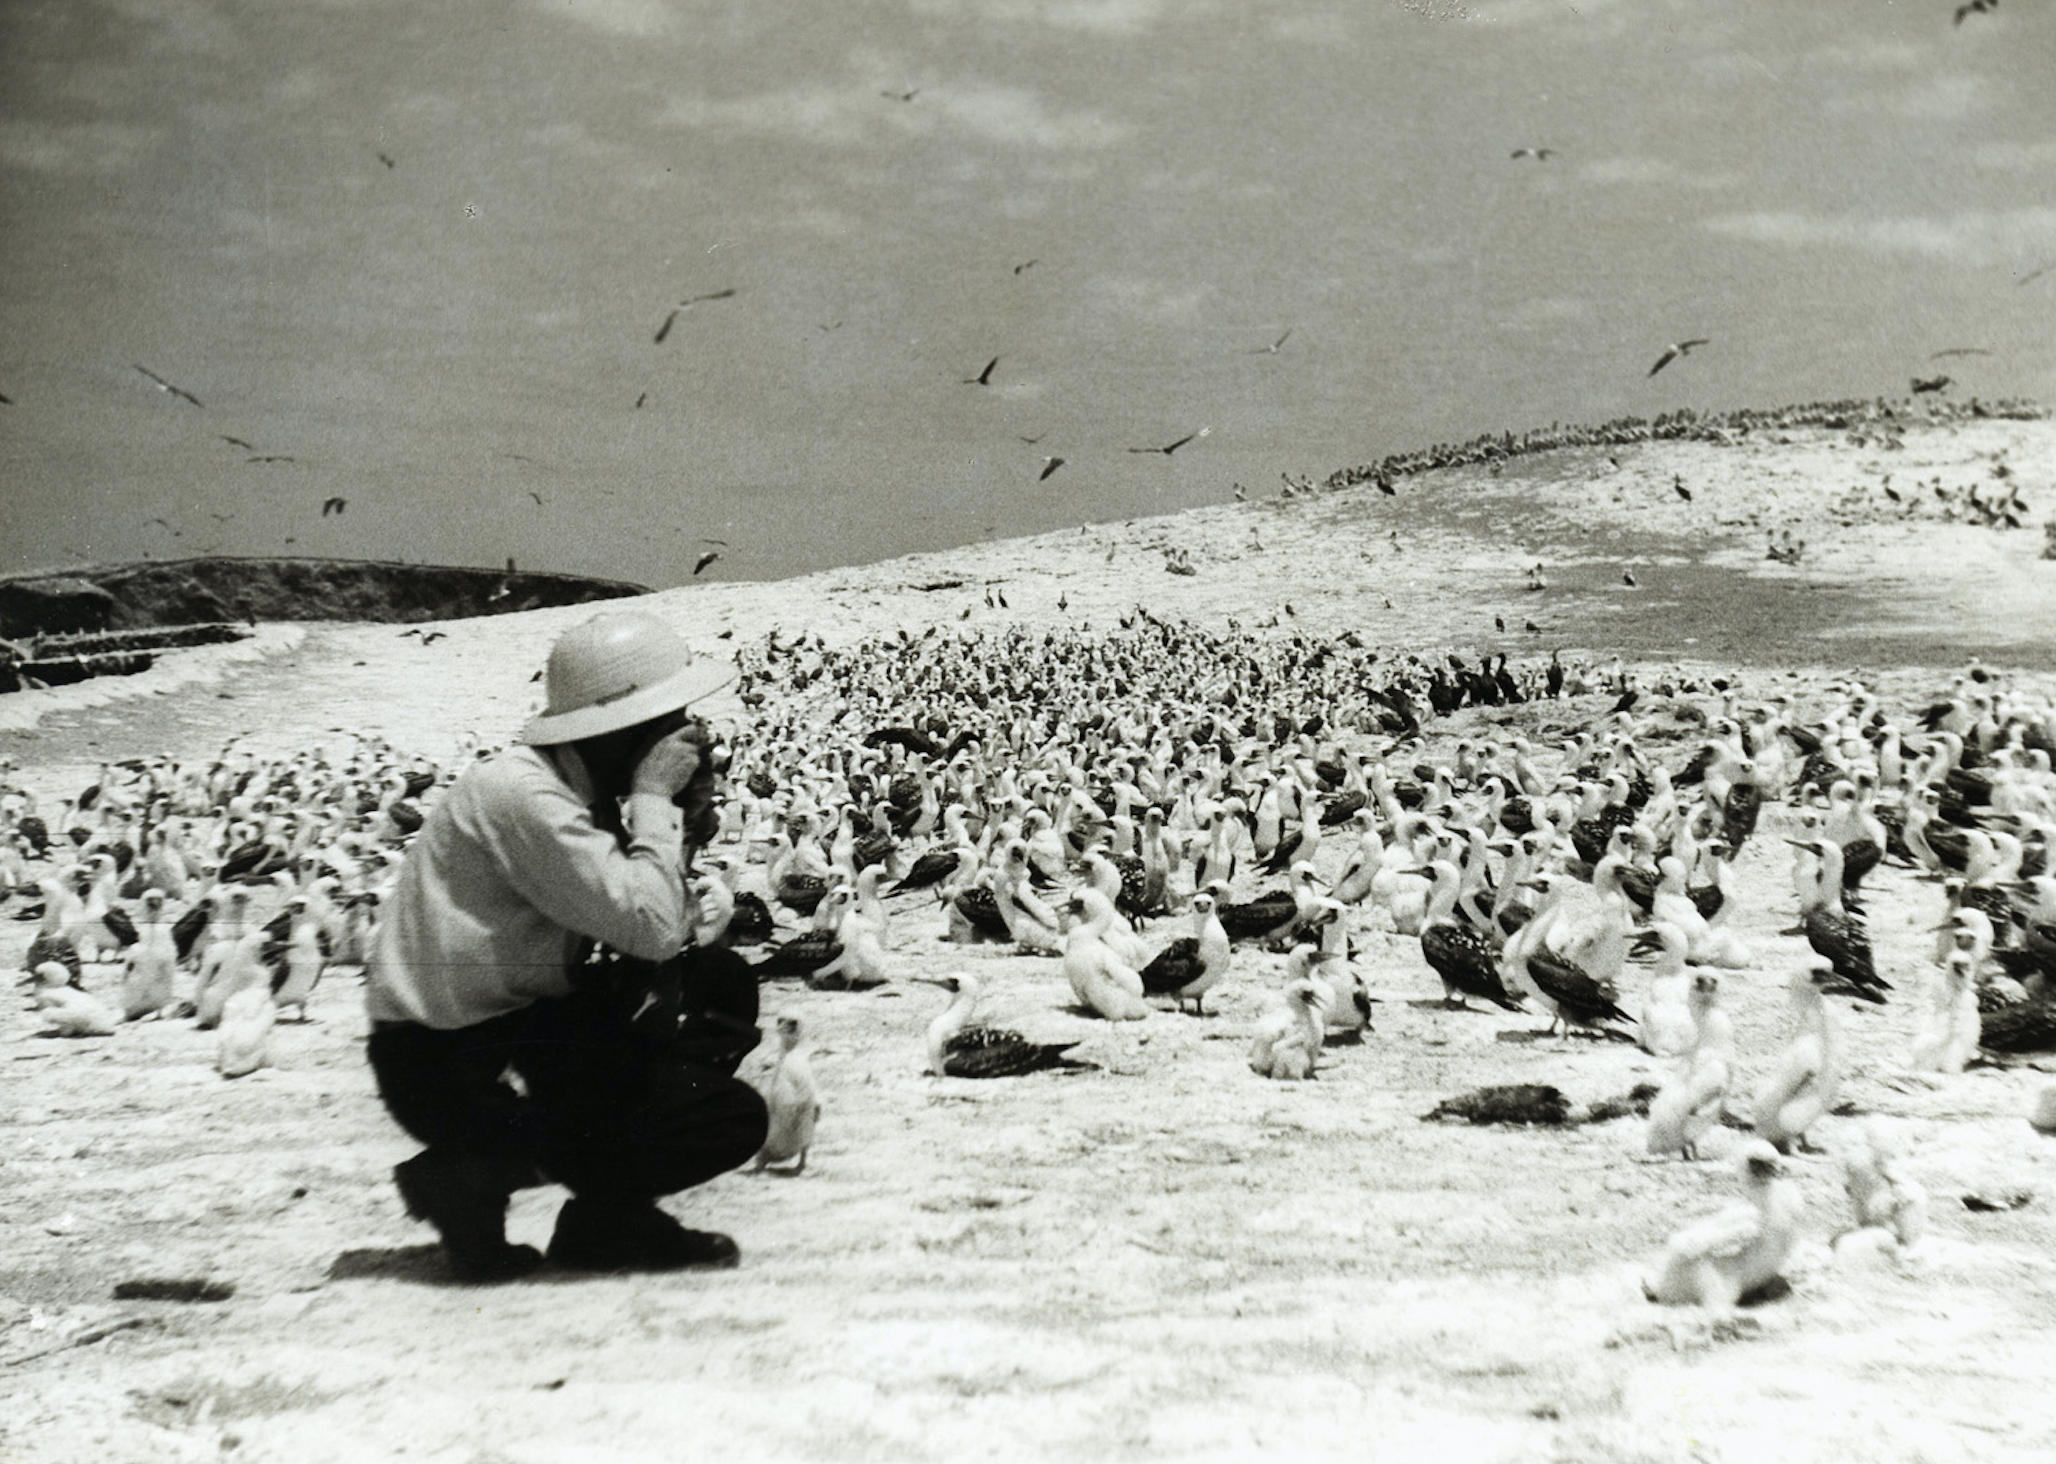 At the height of the Peruvian guano boom, people mined poop instead of gold